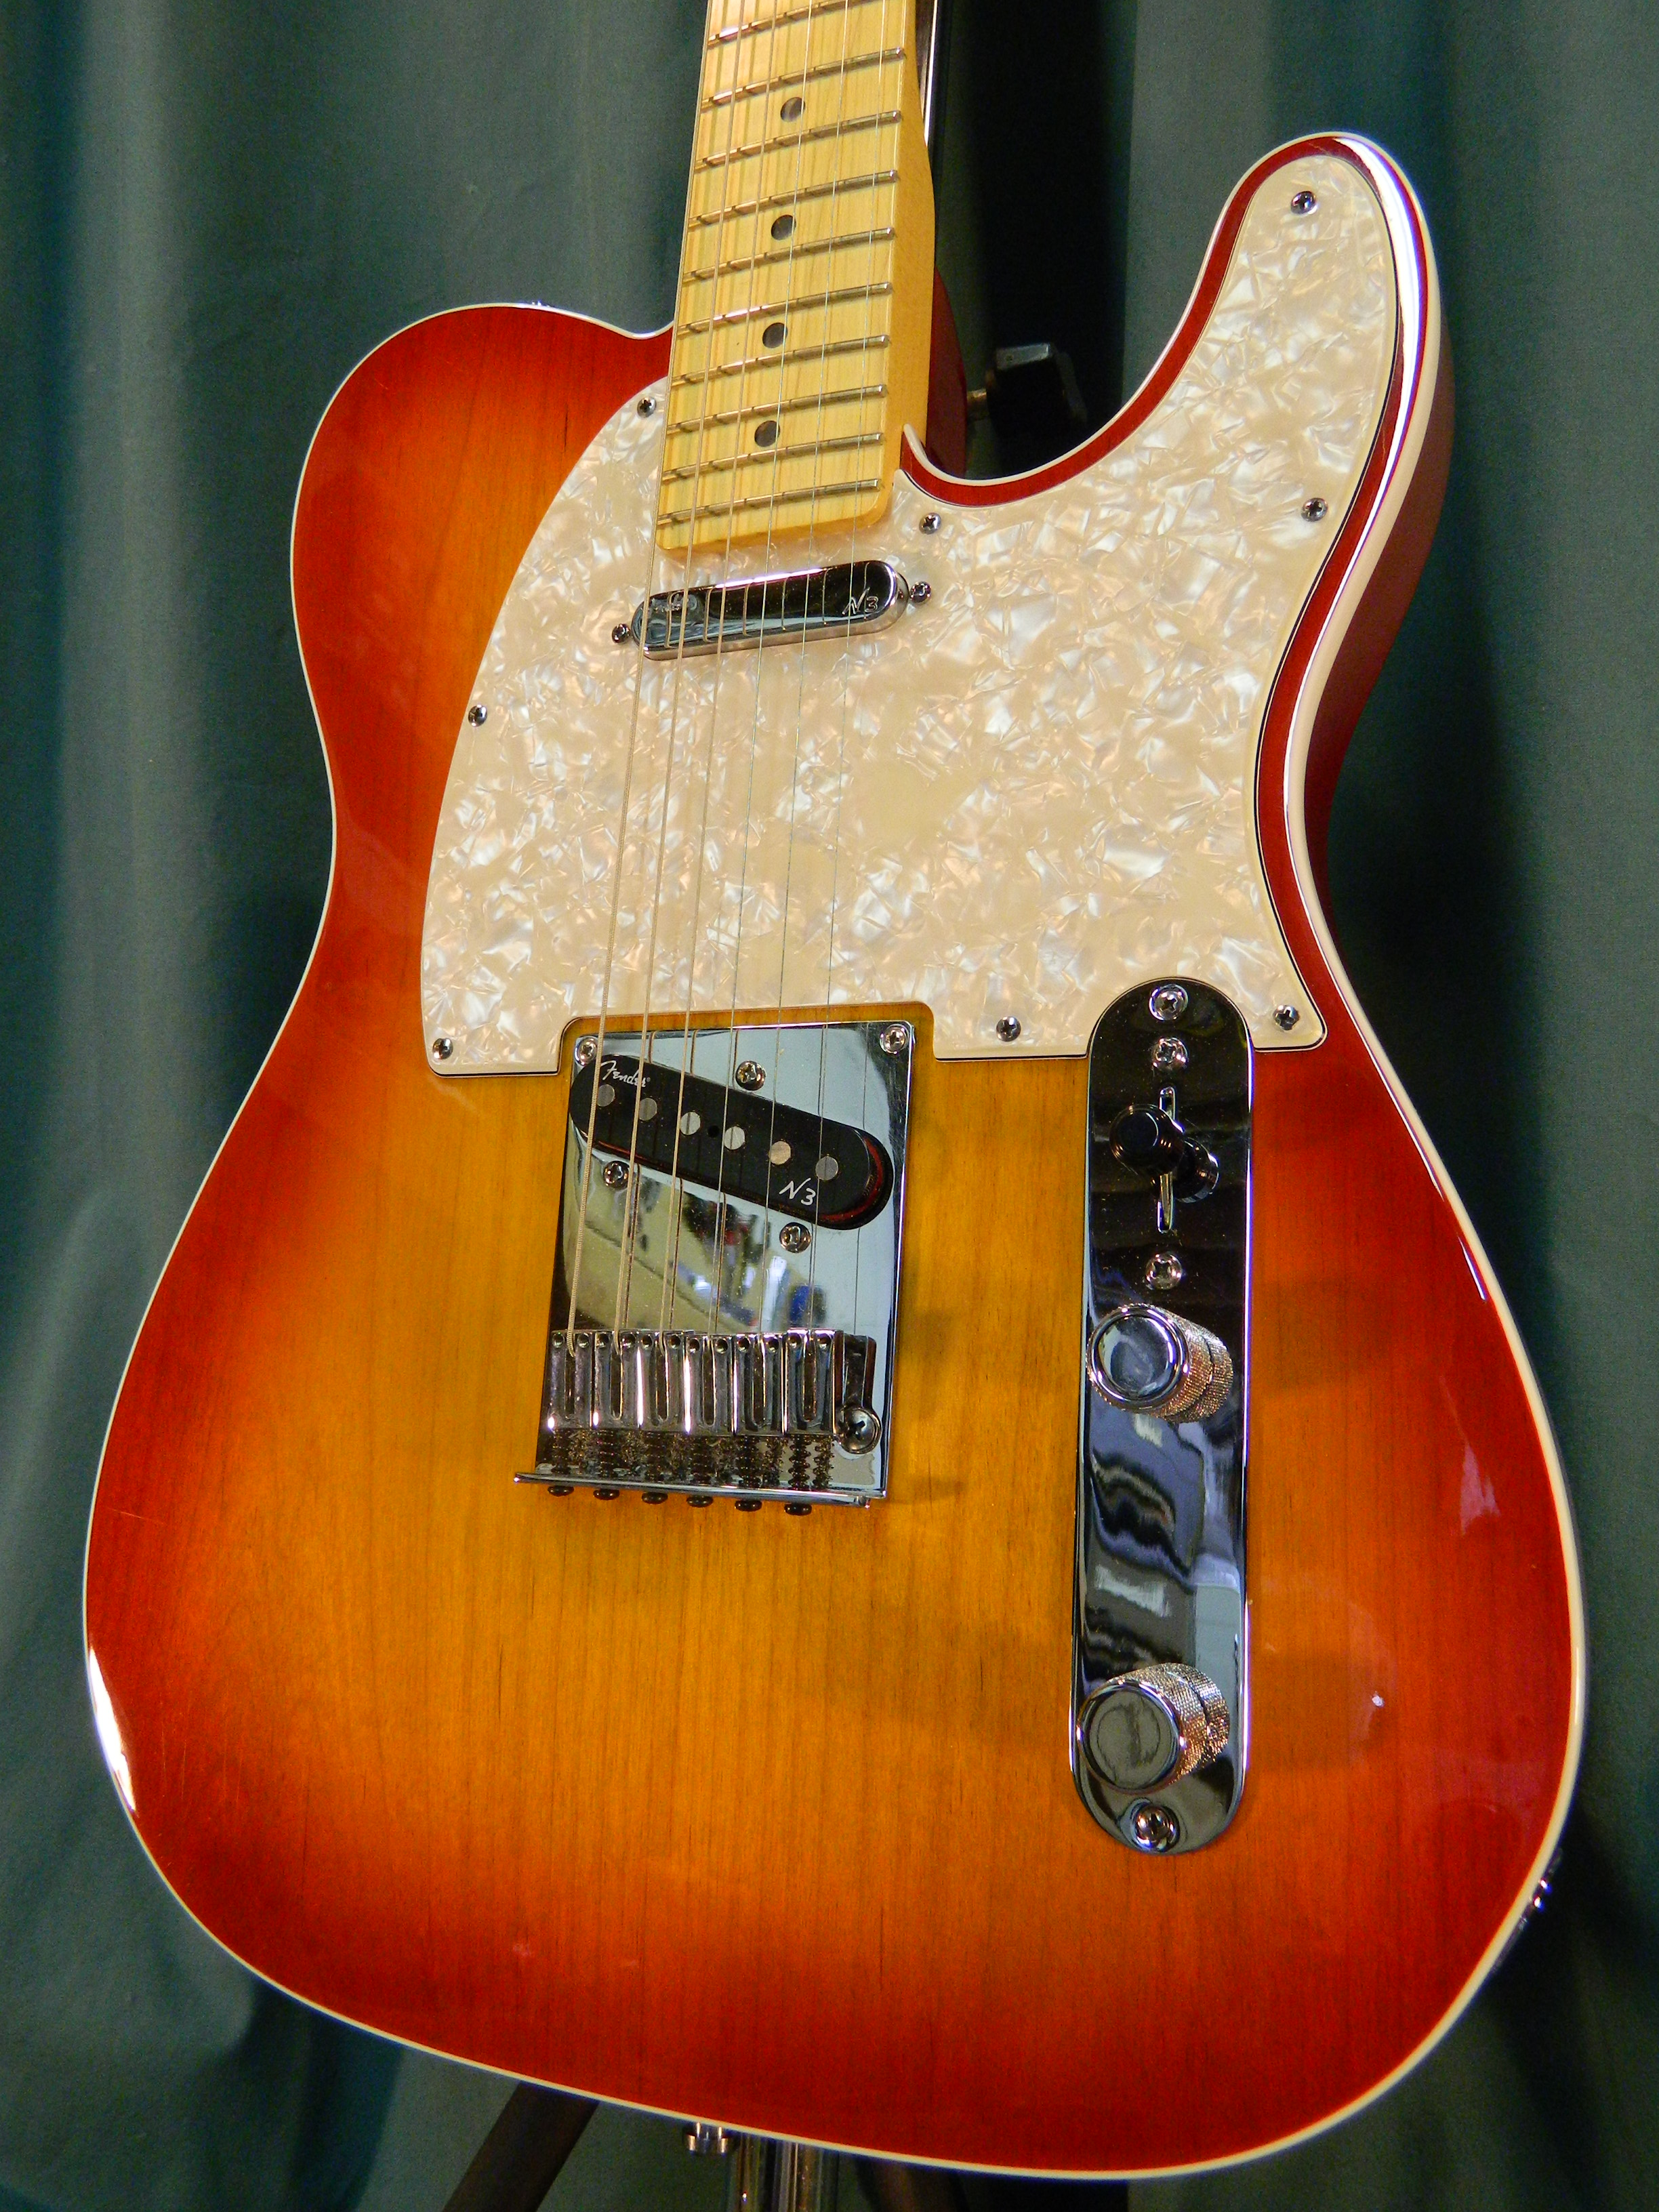 fender american deluxe telecaster 2011 aged cherryburst guitar for sale my generation guitars. Black Bedroom Furniture Sets. Home Design Ideas